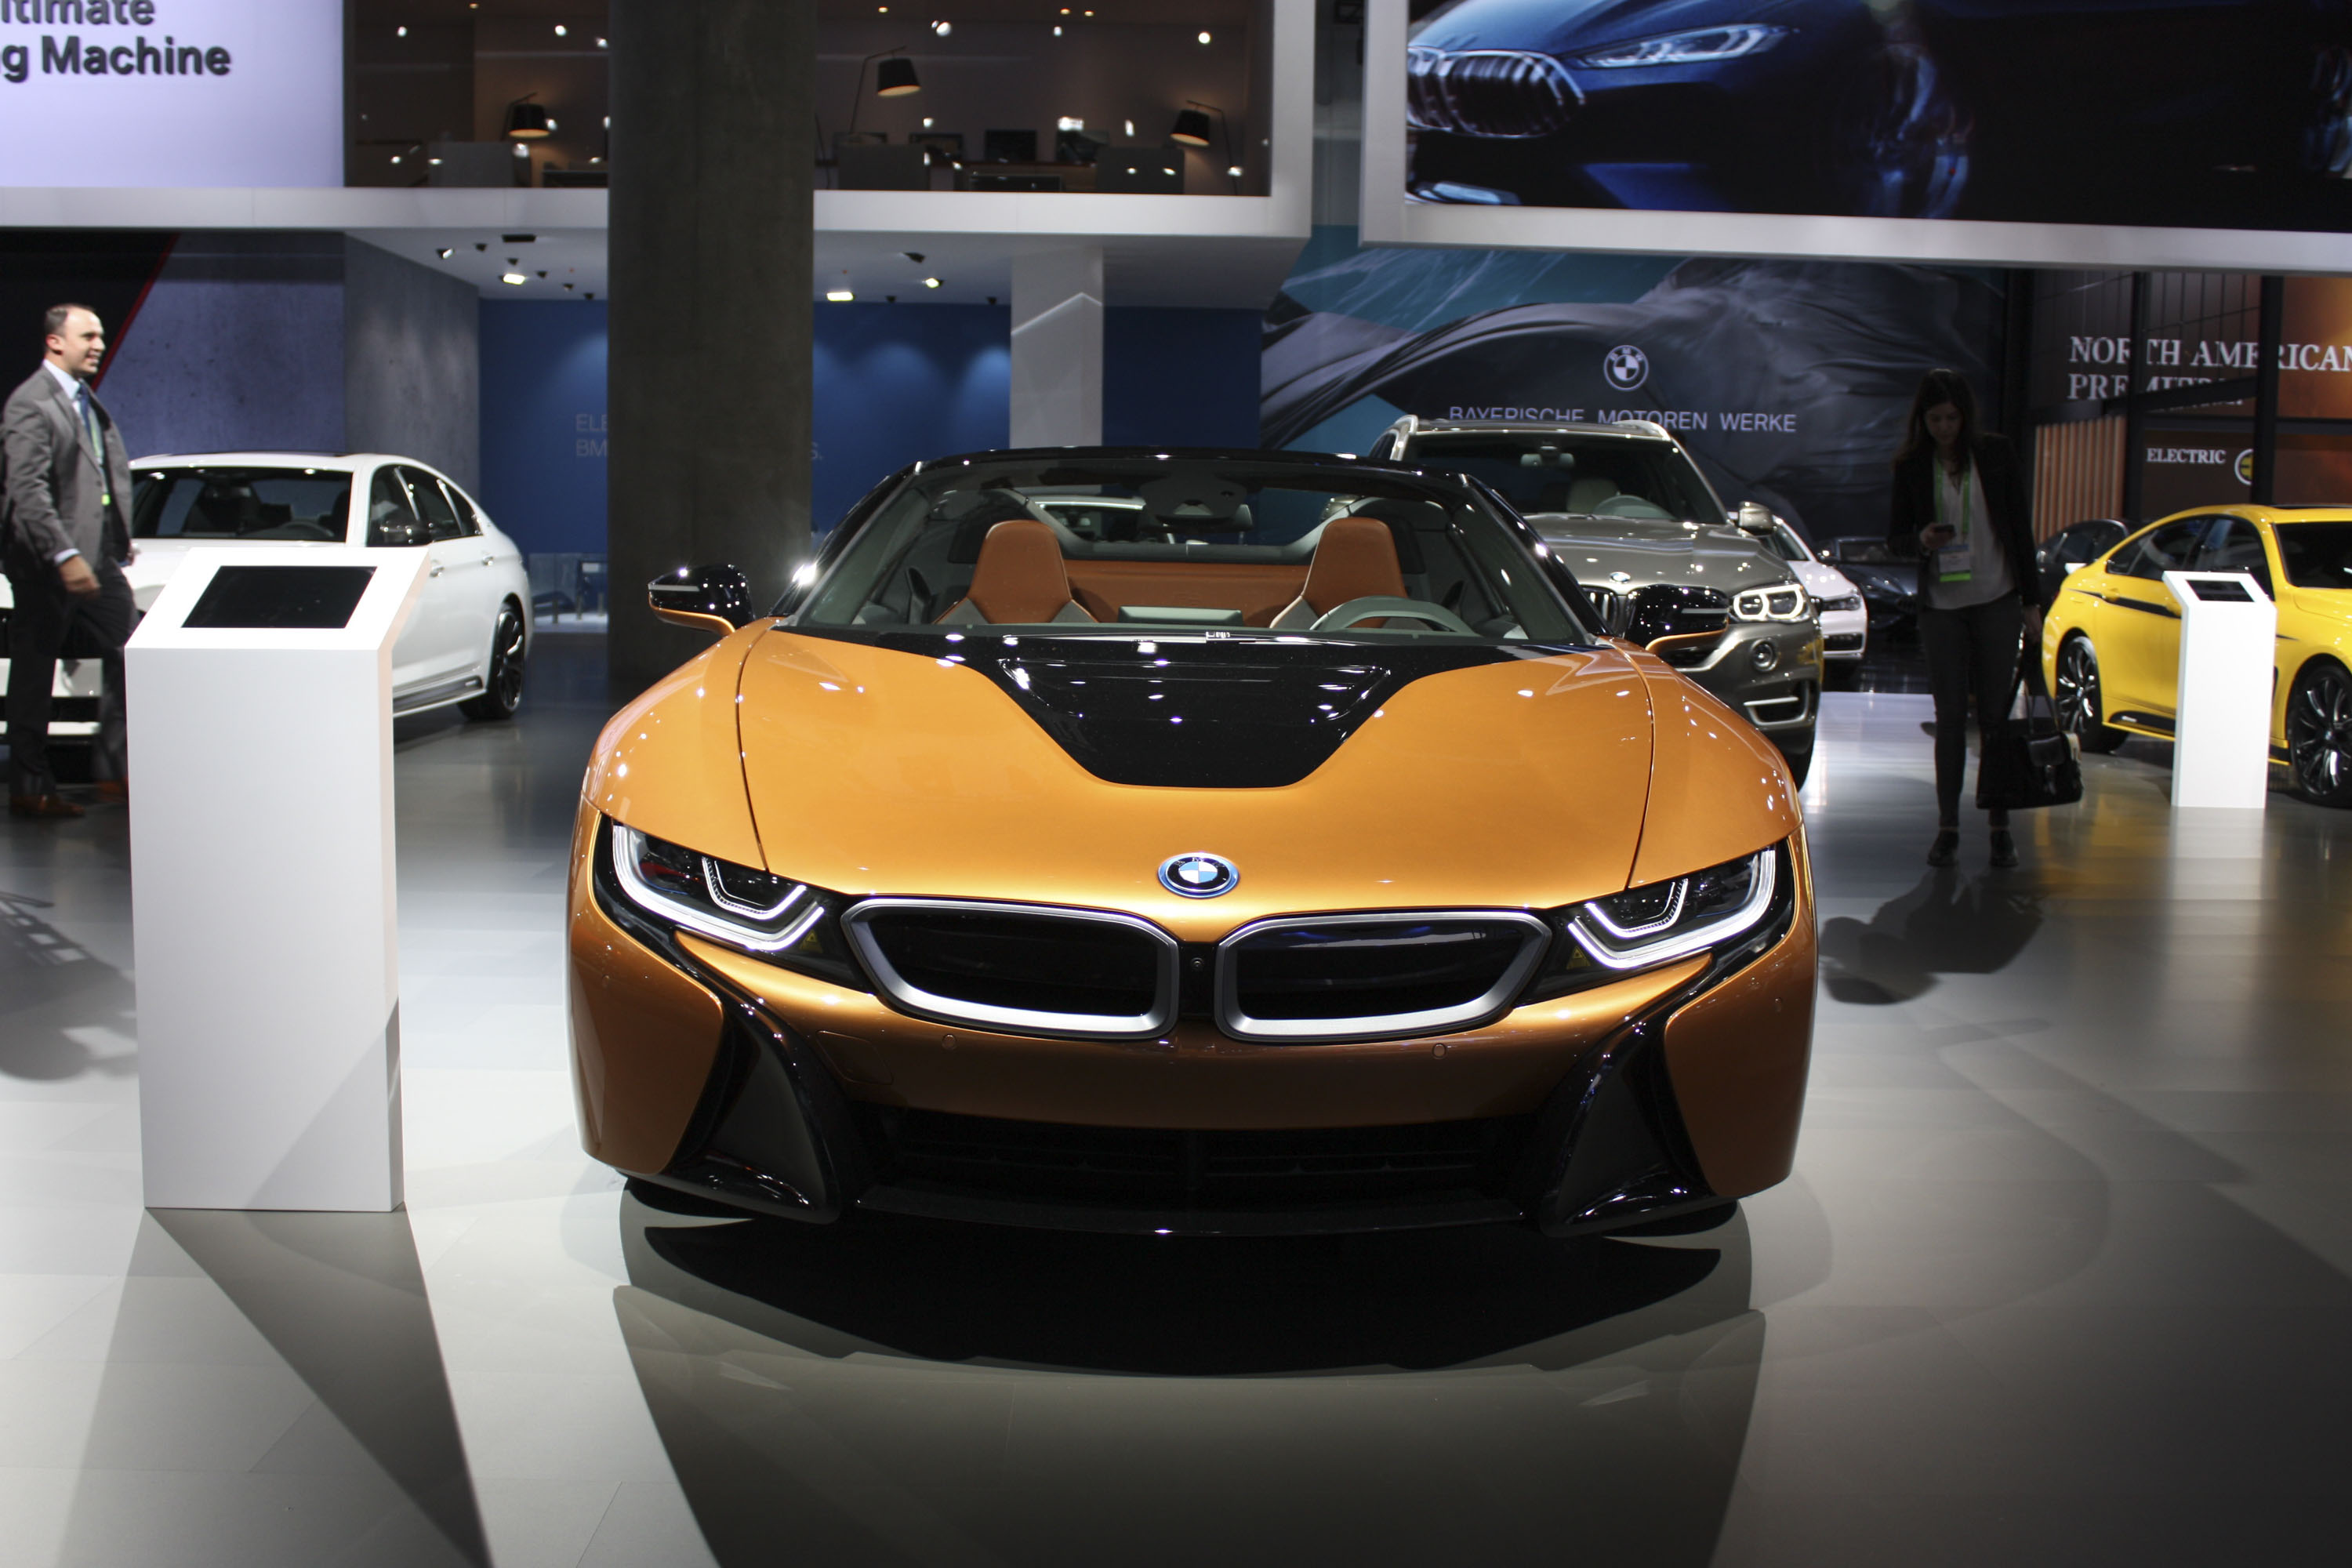 2019 Bmw I8 Roadster Top Speed 2001 Z3 Coupe Electrical Troubleshooting Manual Original